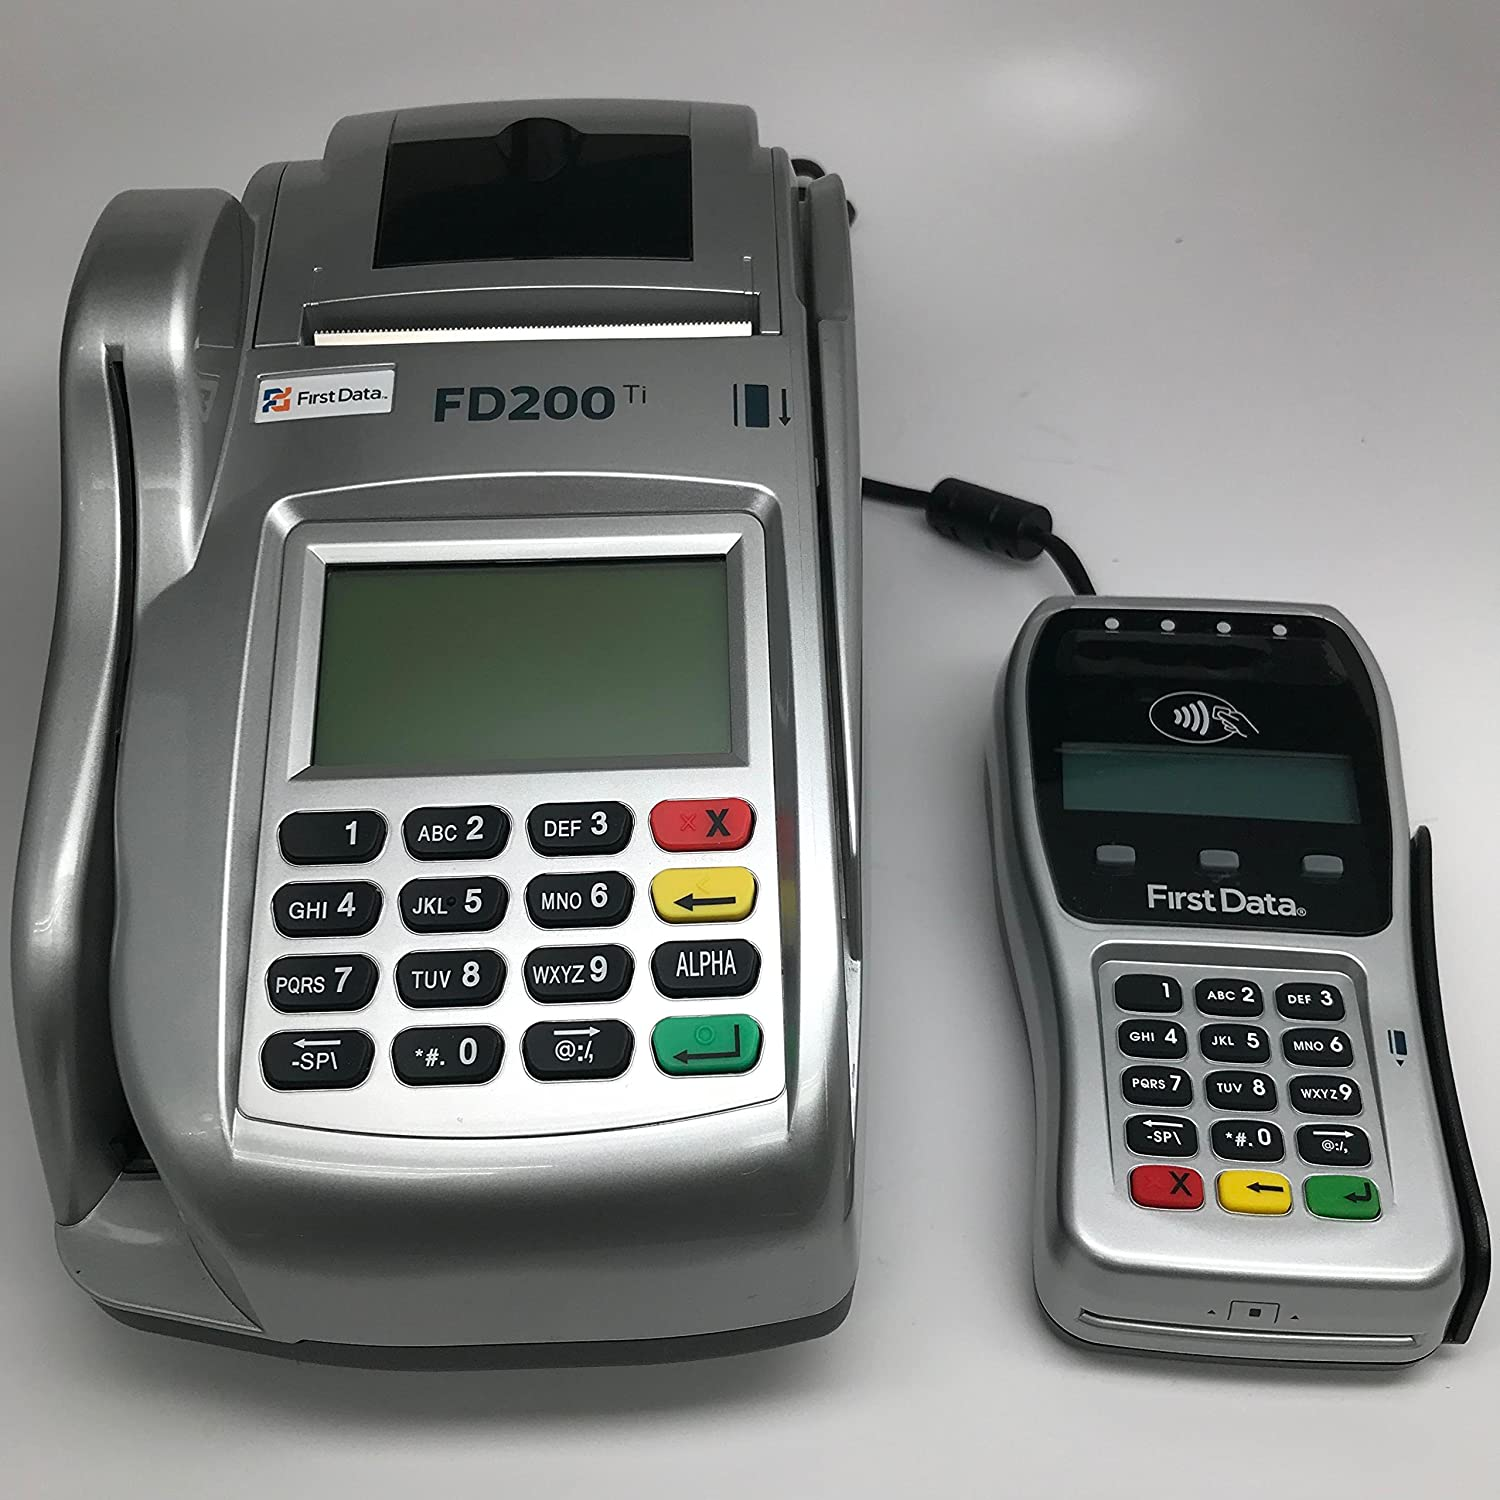 FD-200ti Credit Card Terminal and FD-35 PINpad with Injection